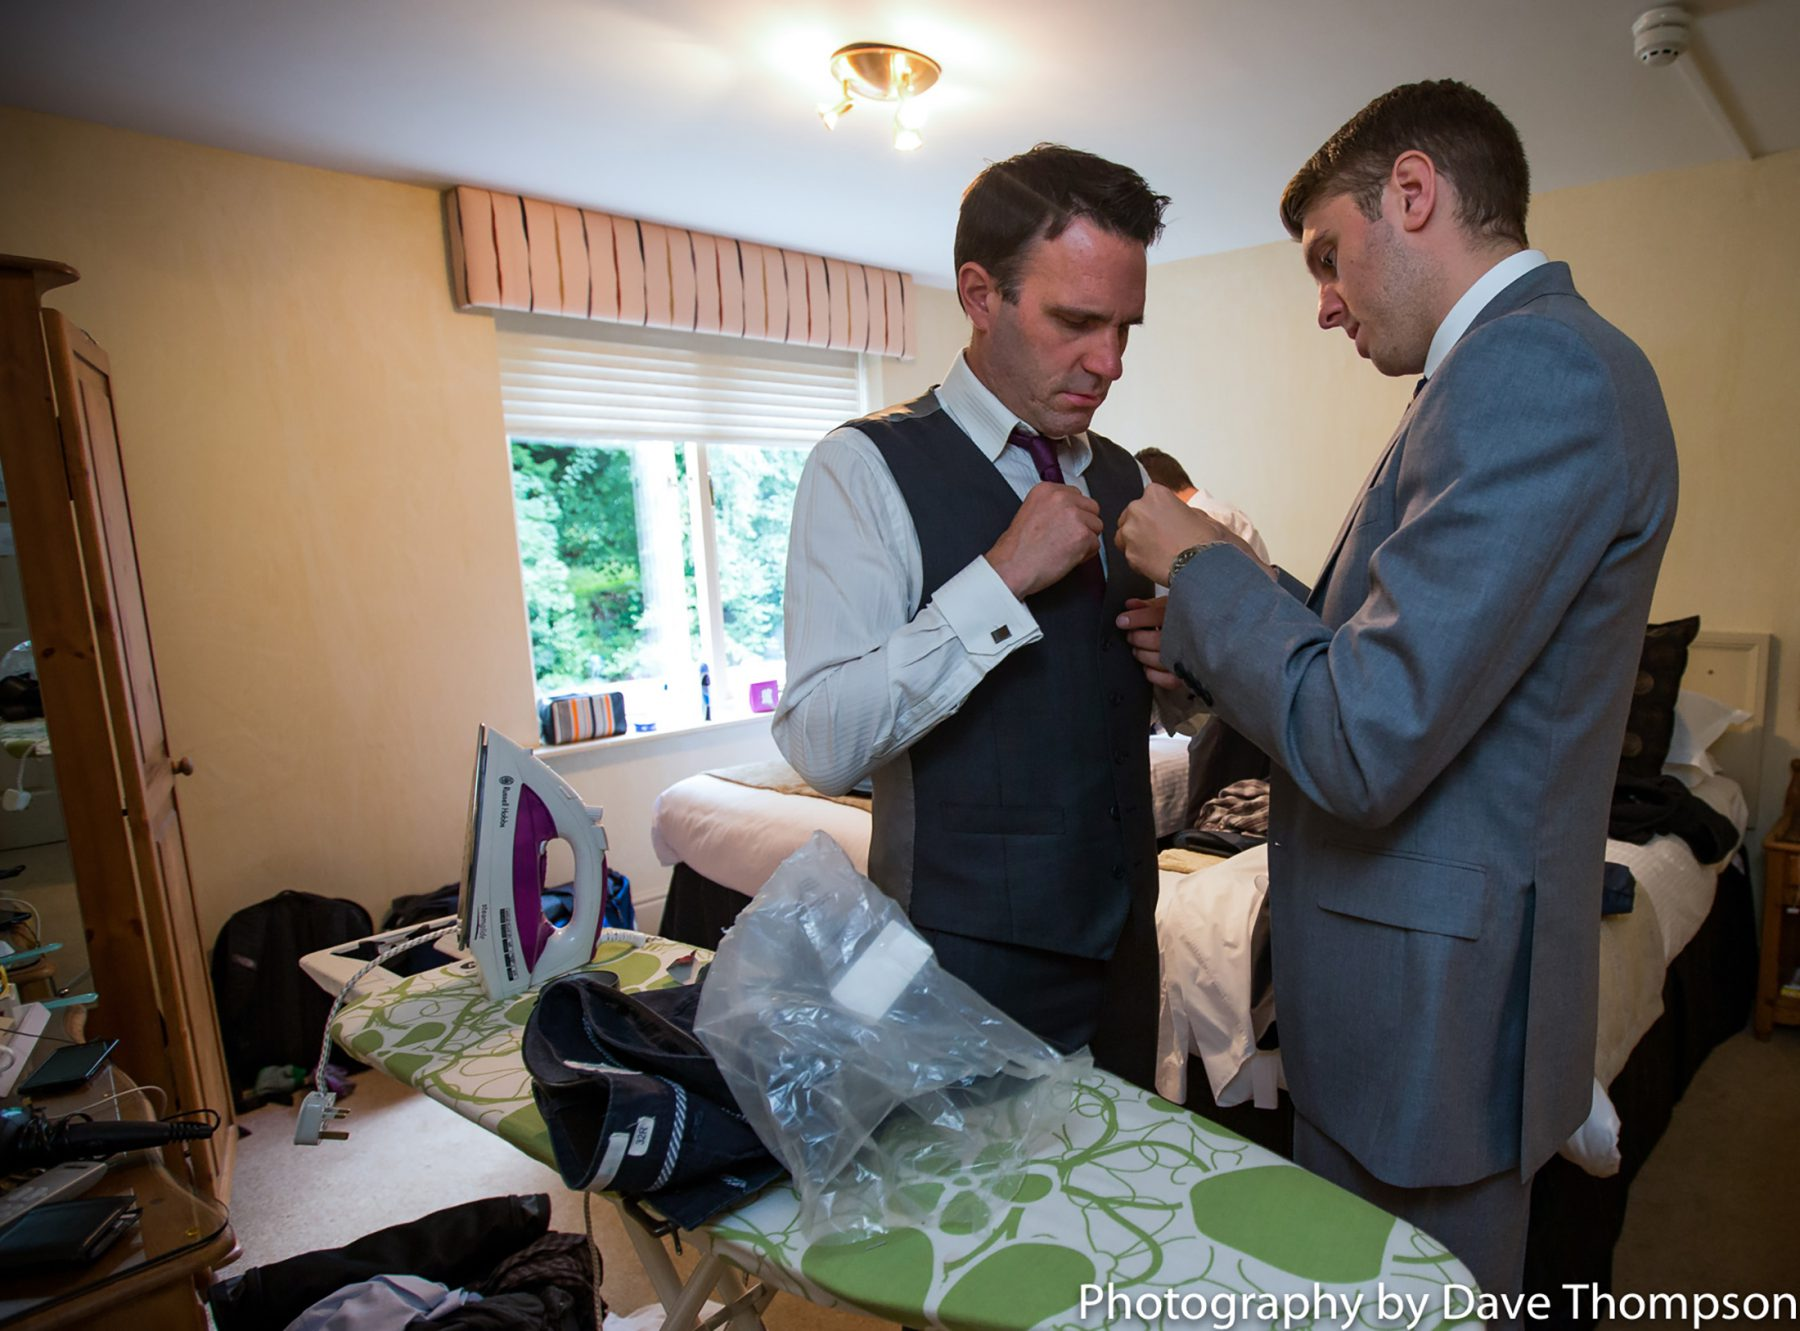 The groom and his best man get ready